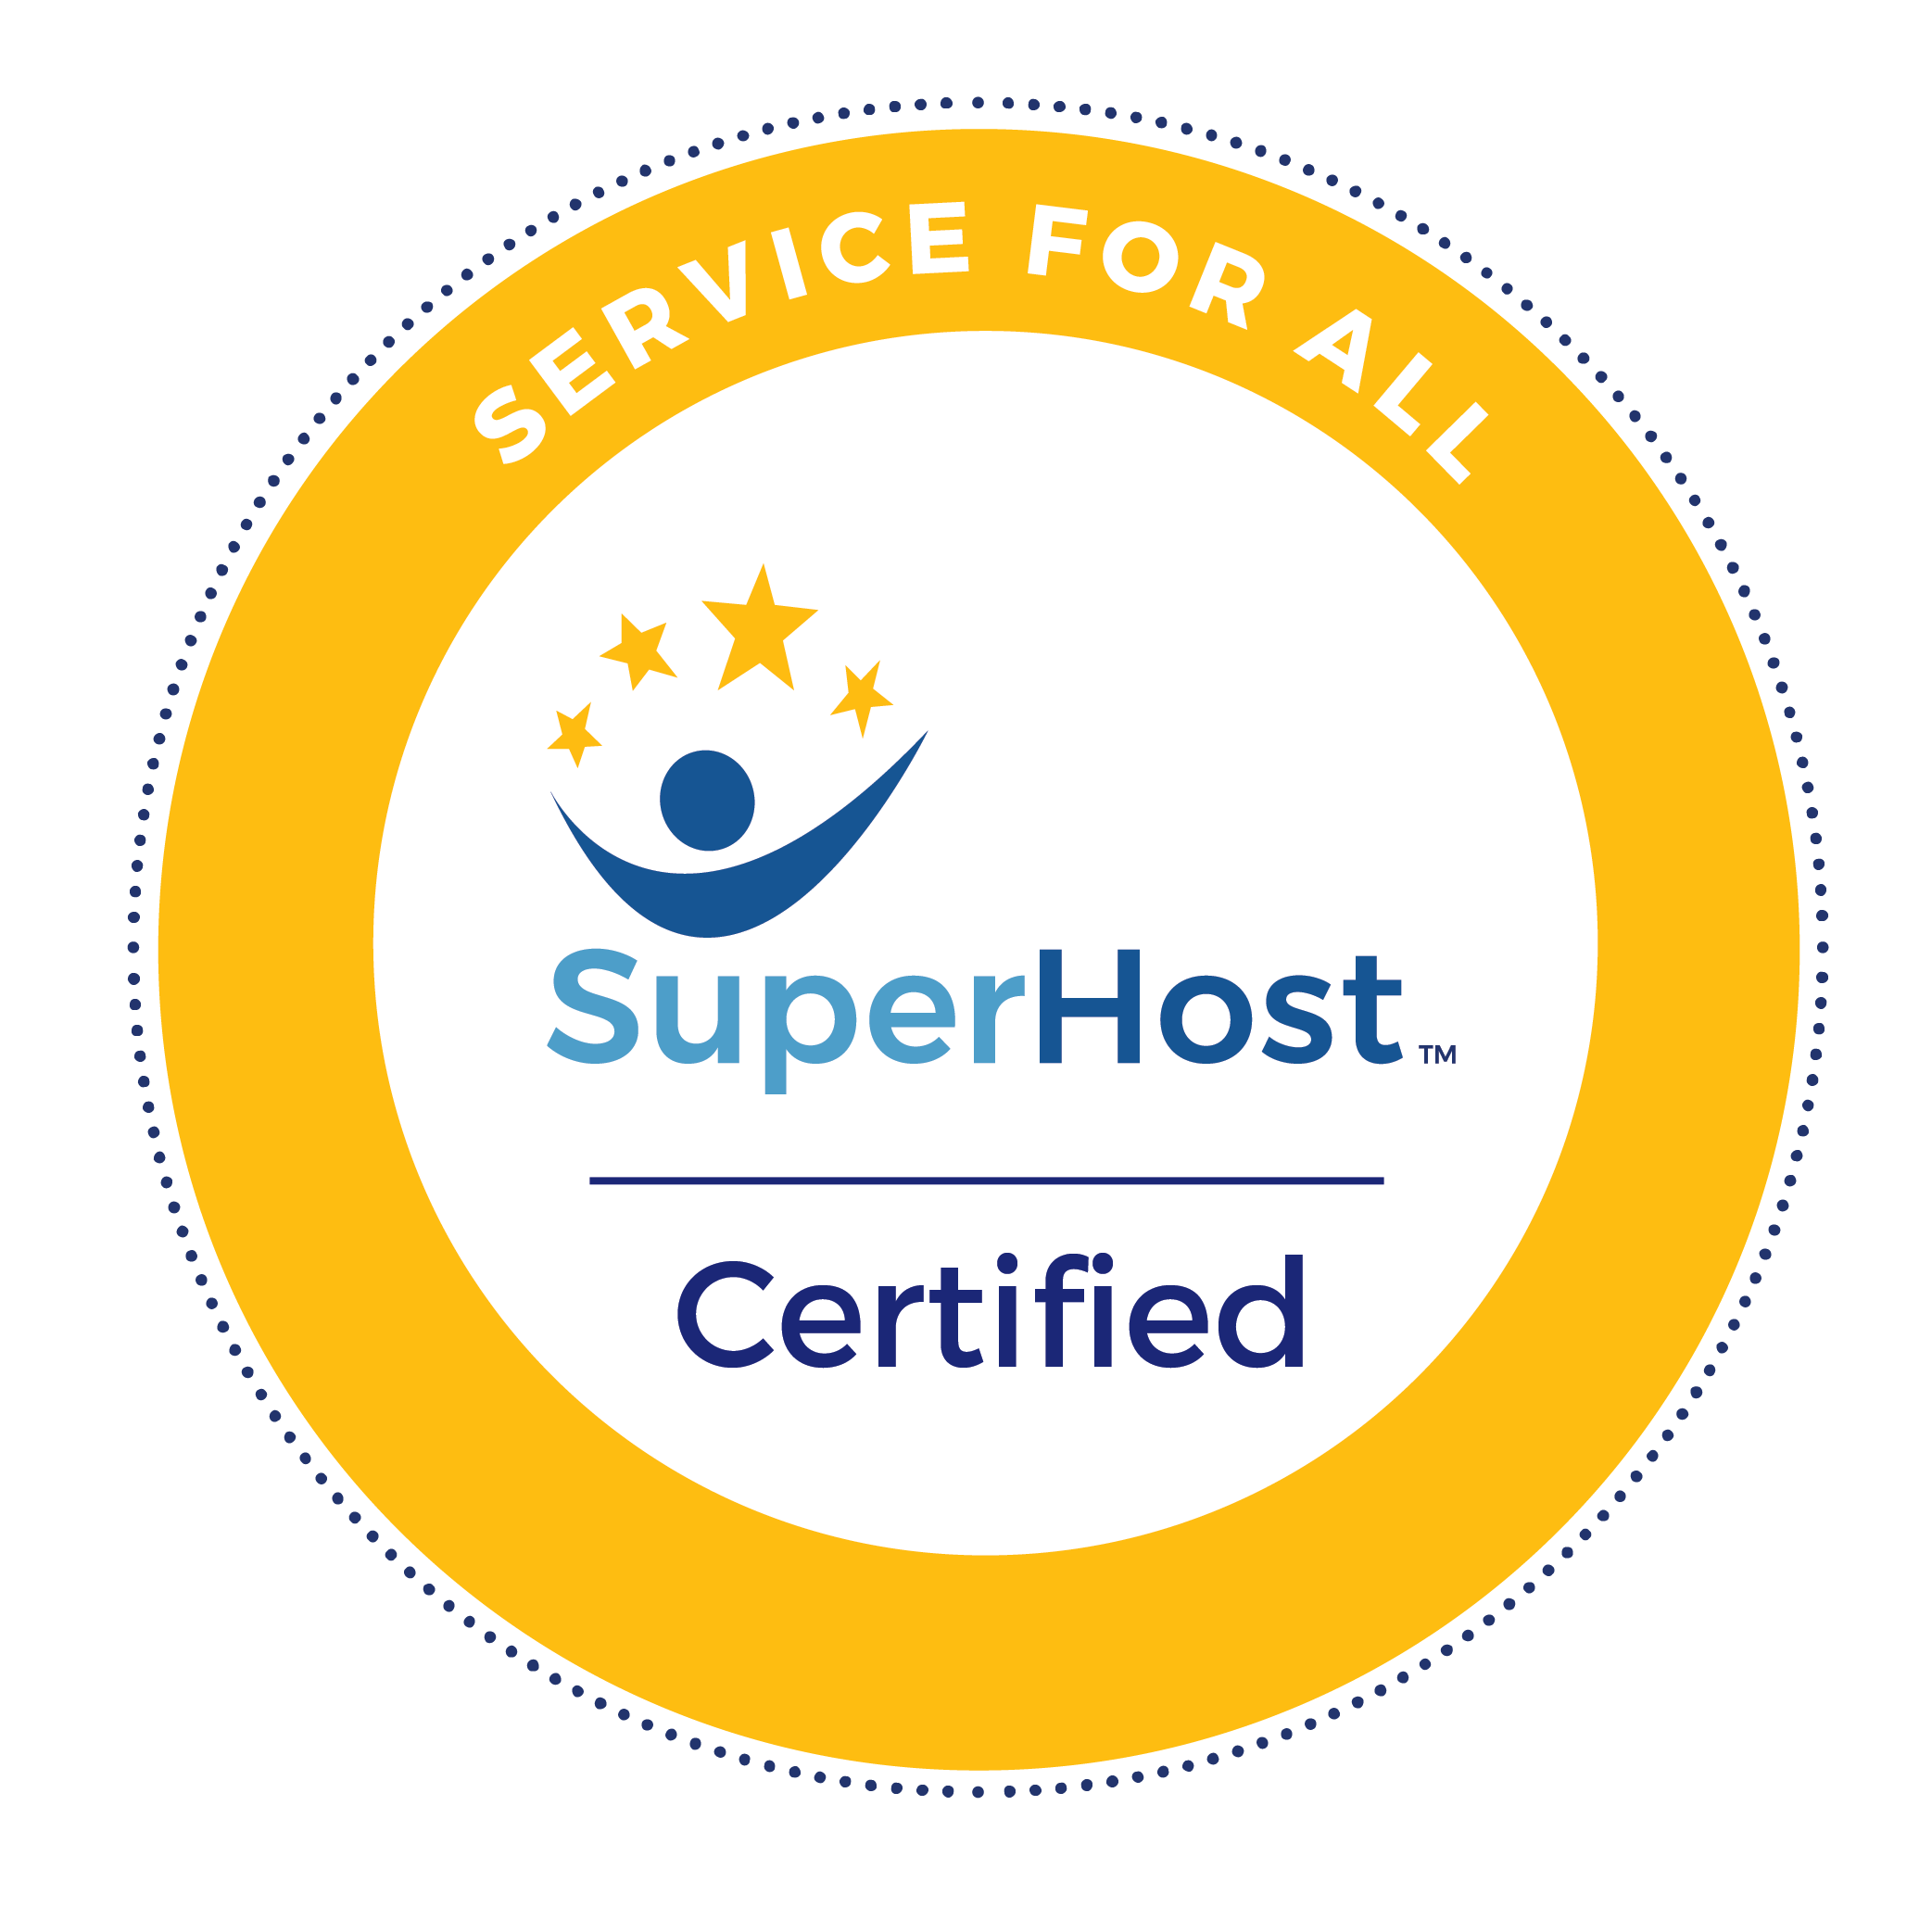 SuperHost Service For All Certified Badge